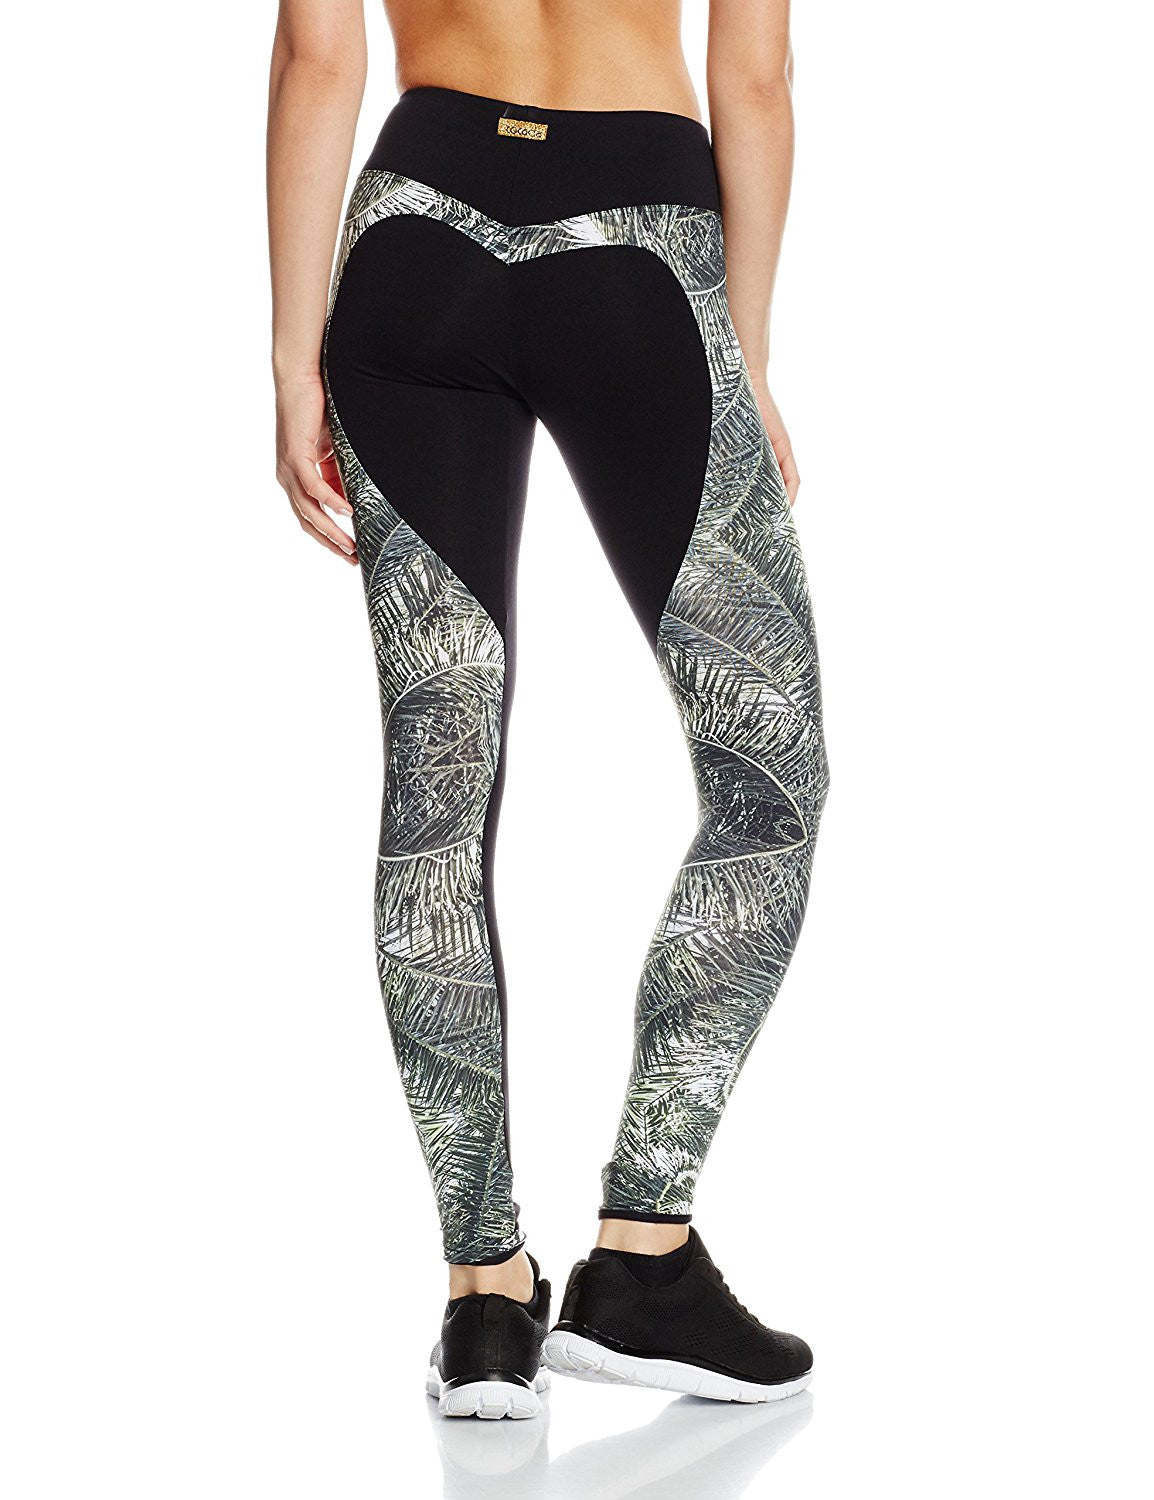 Lycra sport tights in palm leaf print